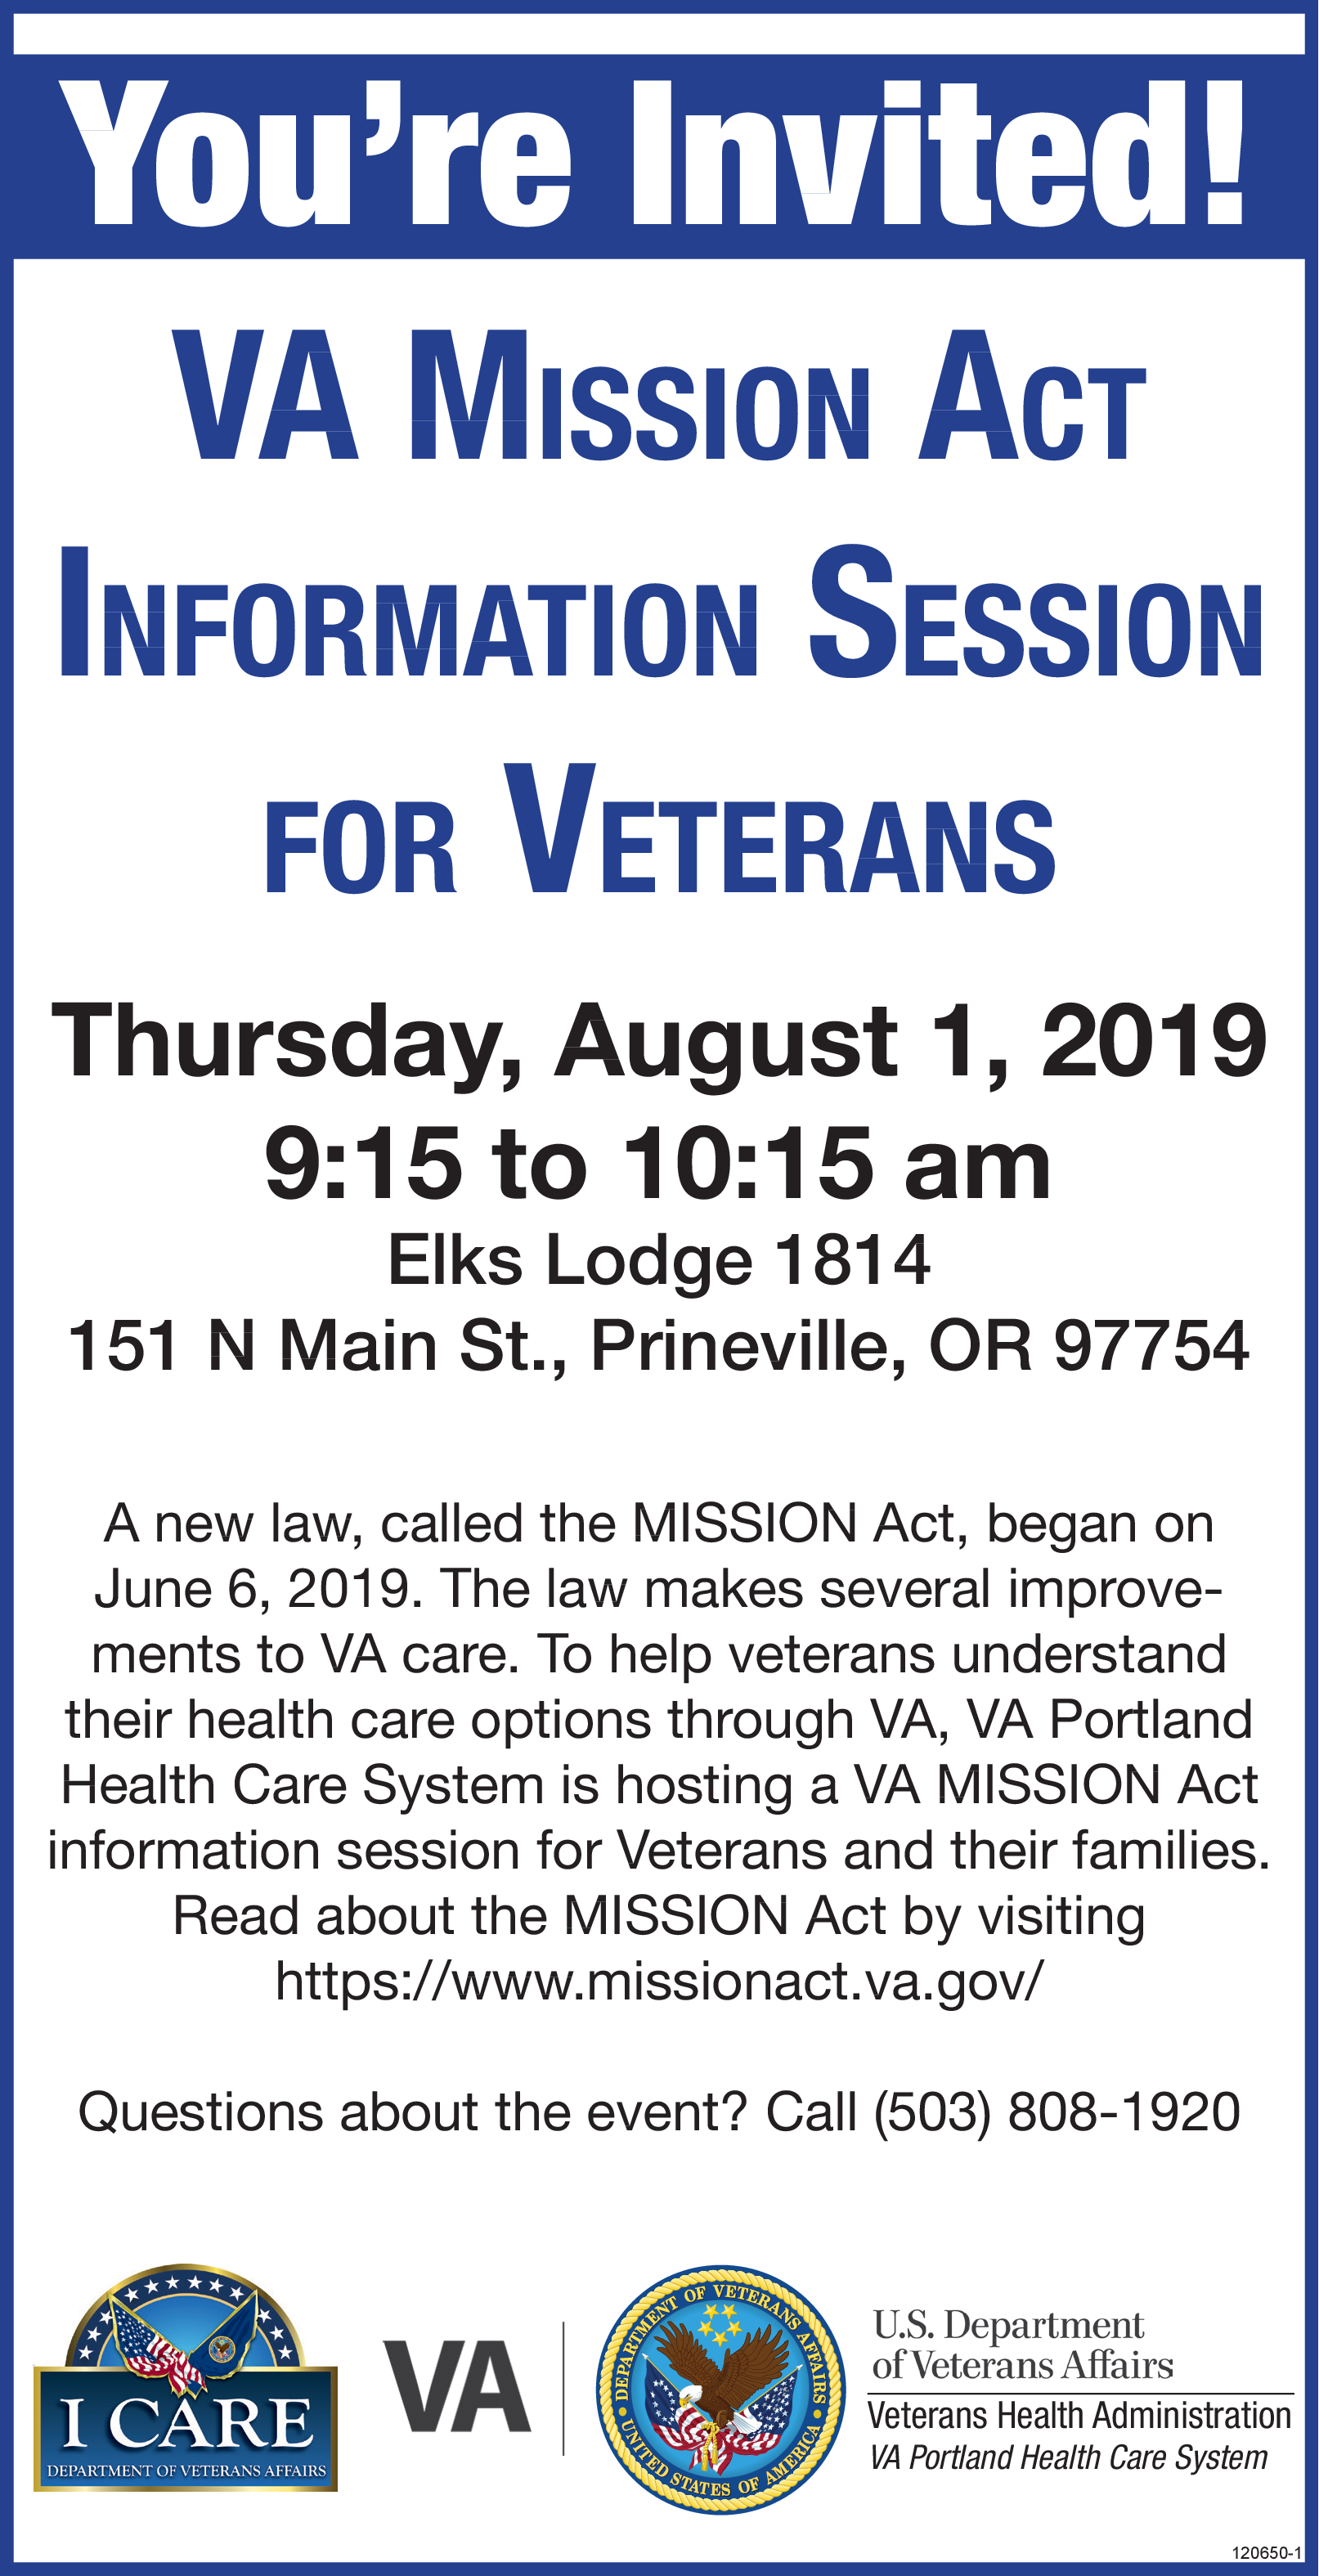 VA Mission Act Information Session in West Linn, OR, Government